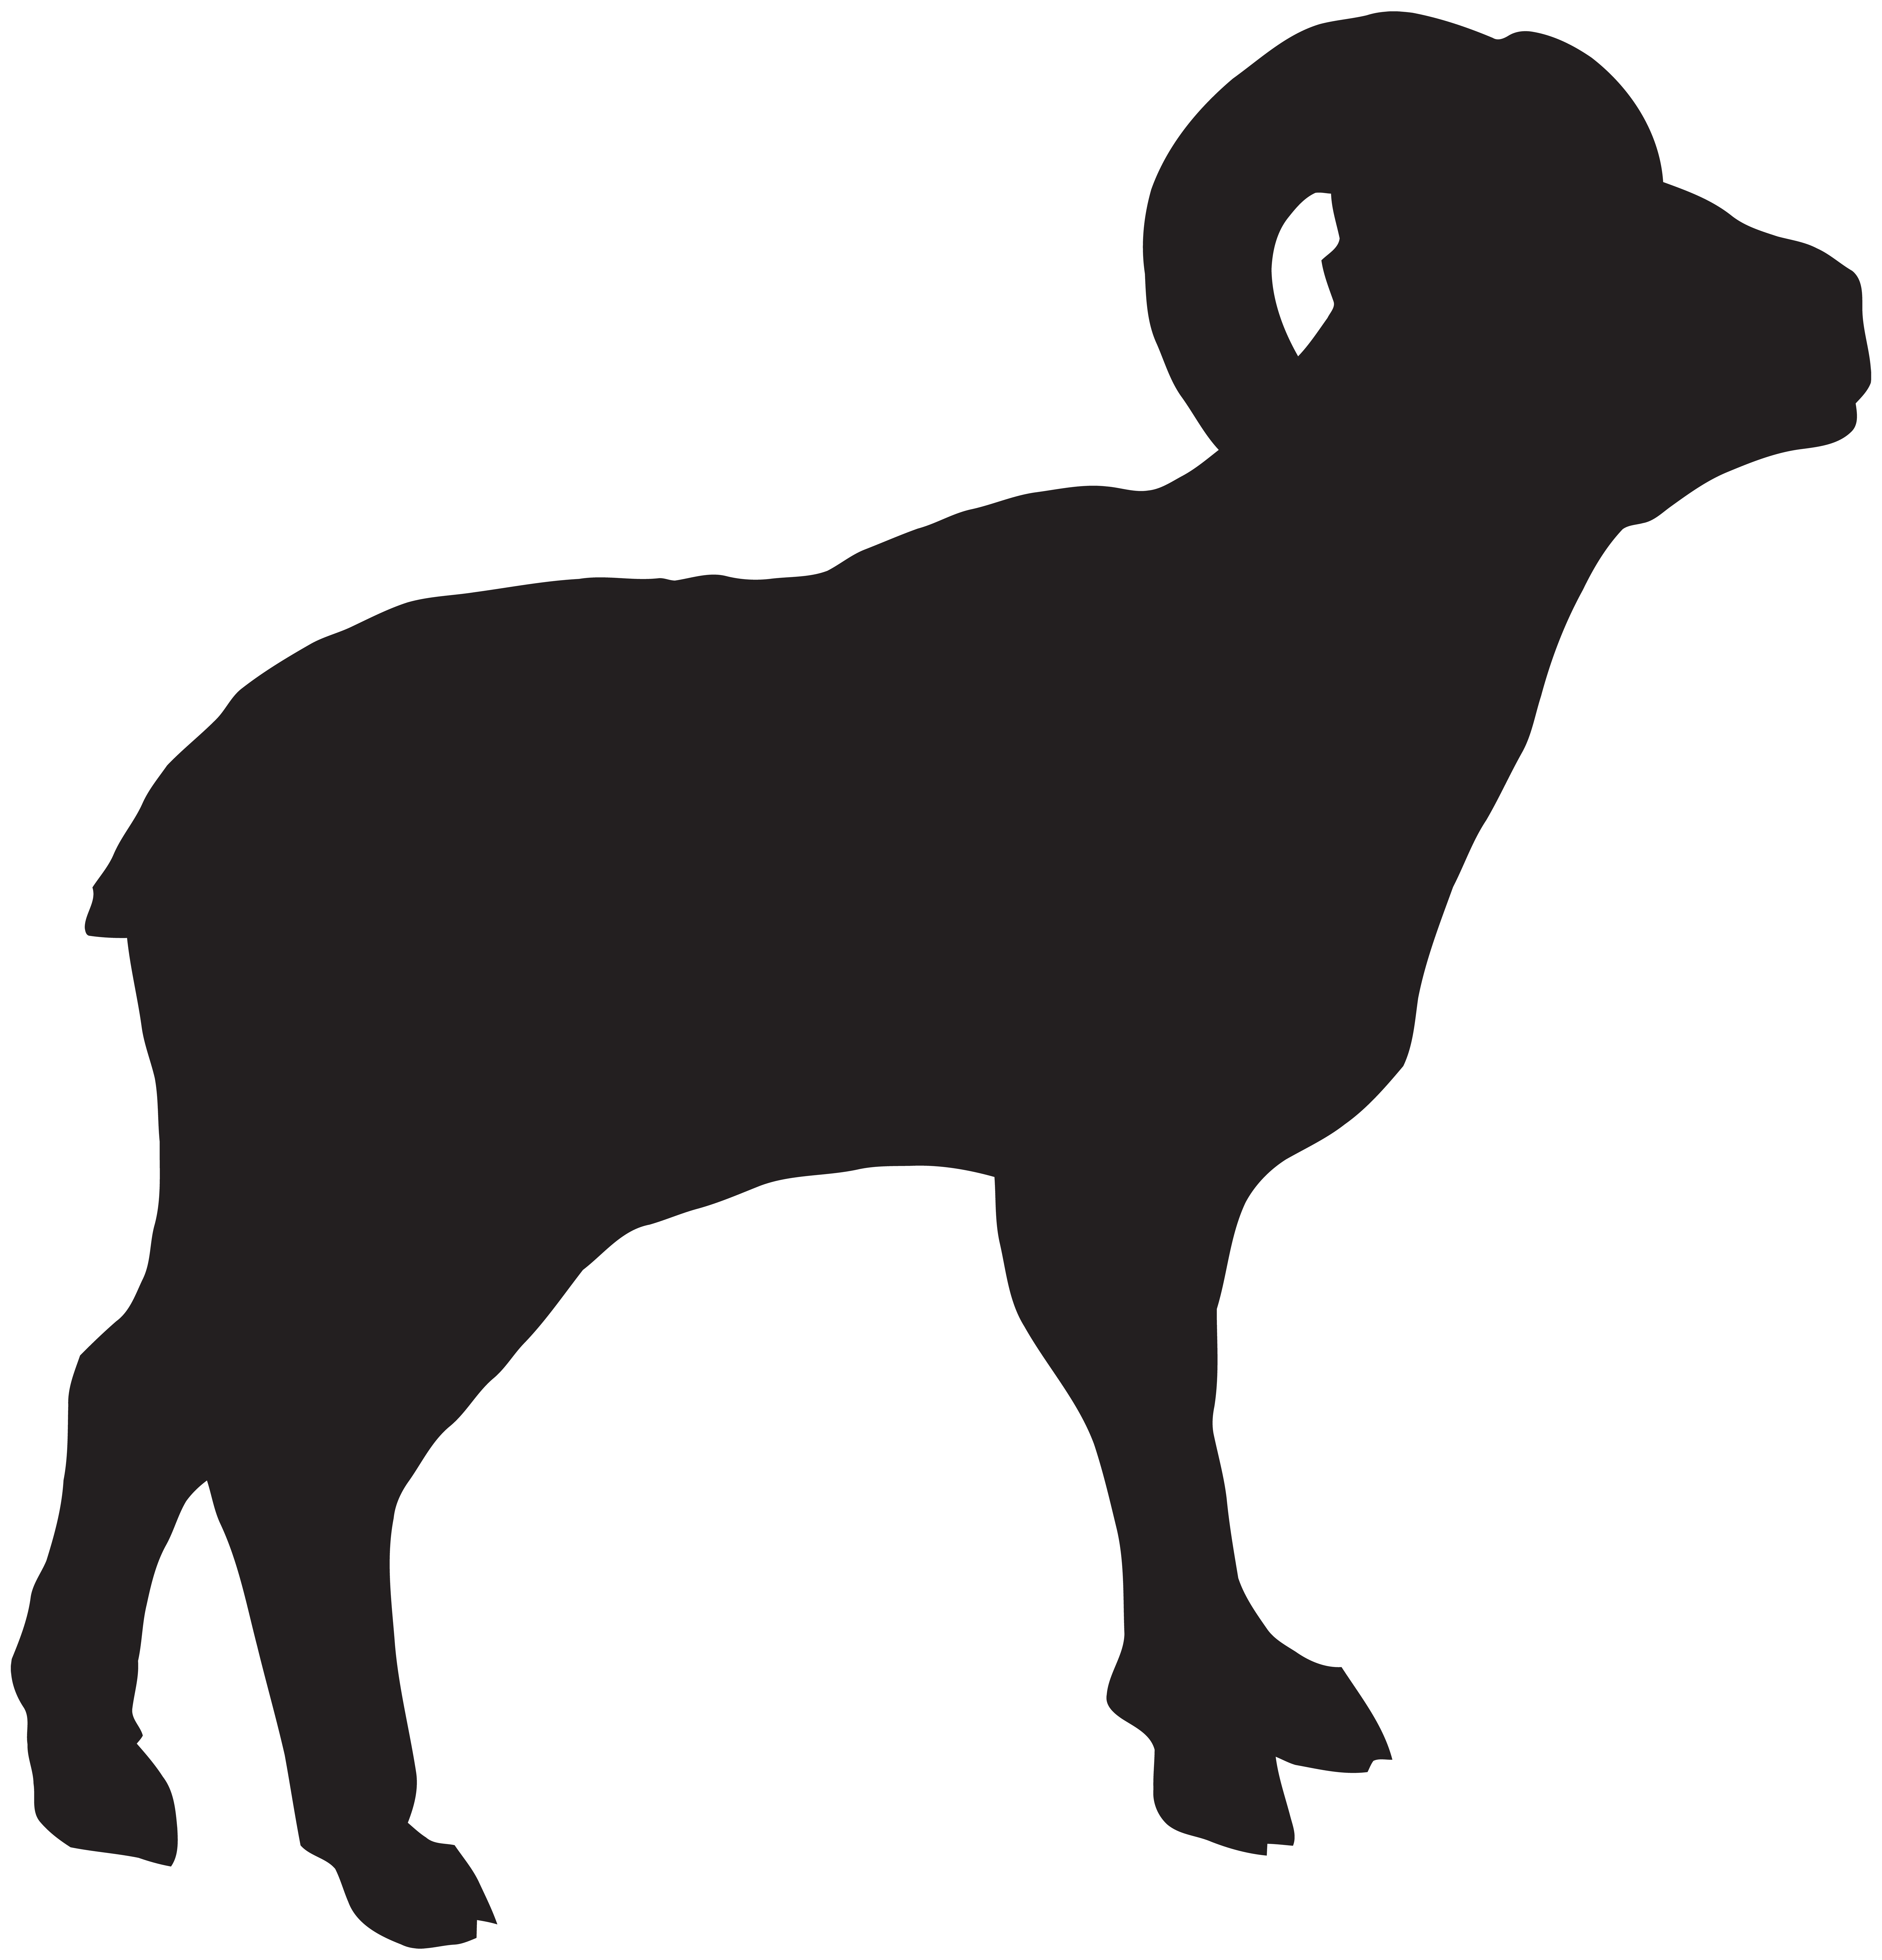 Bighorn Sheep Silhouette PNG Clip Art Image.